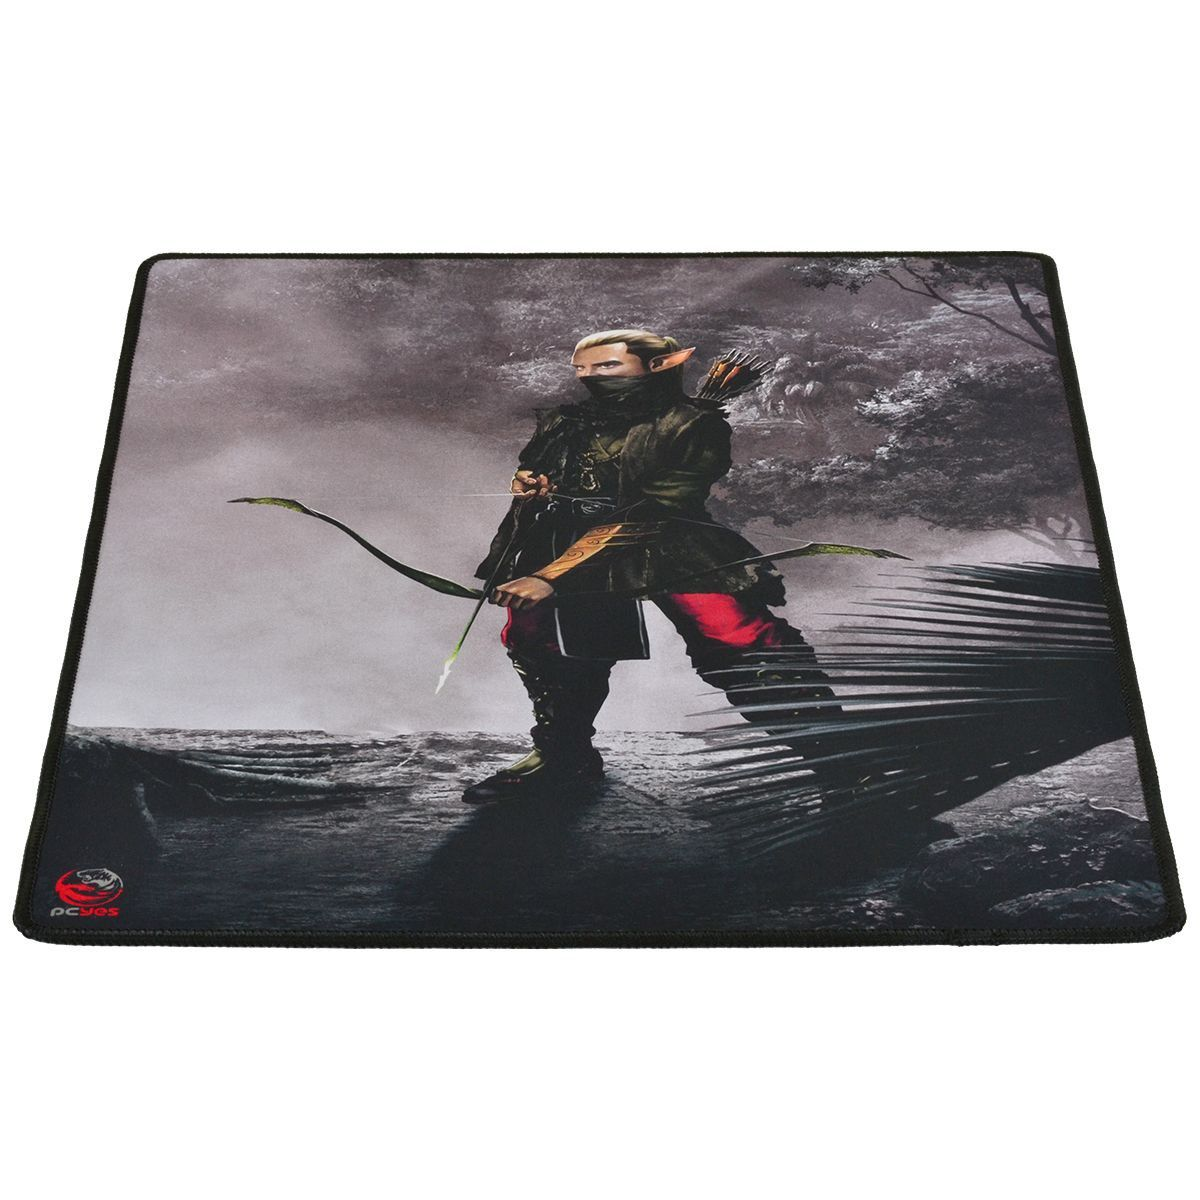 Mouse Pad RPG ARCHER 400X500mm RA40X50 28982 - Pcyes